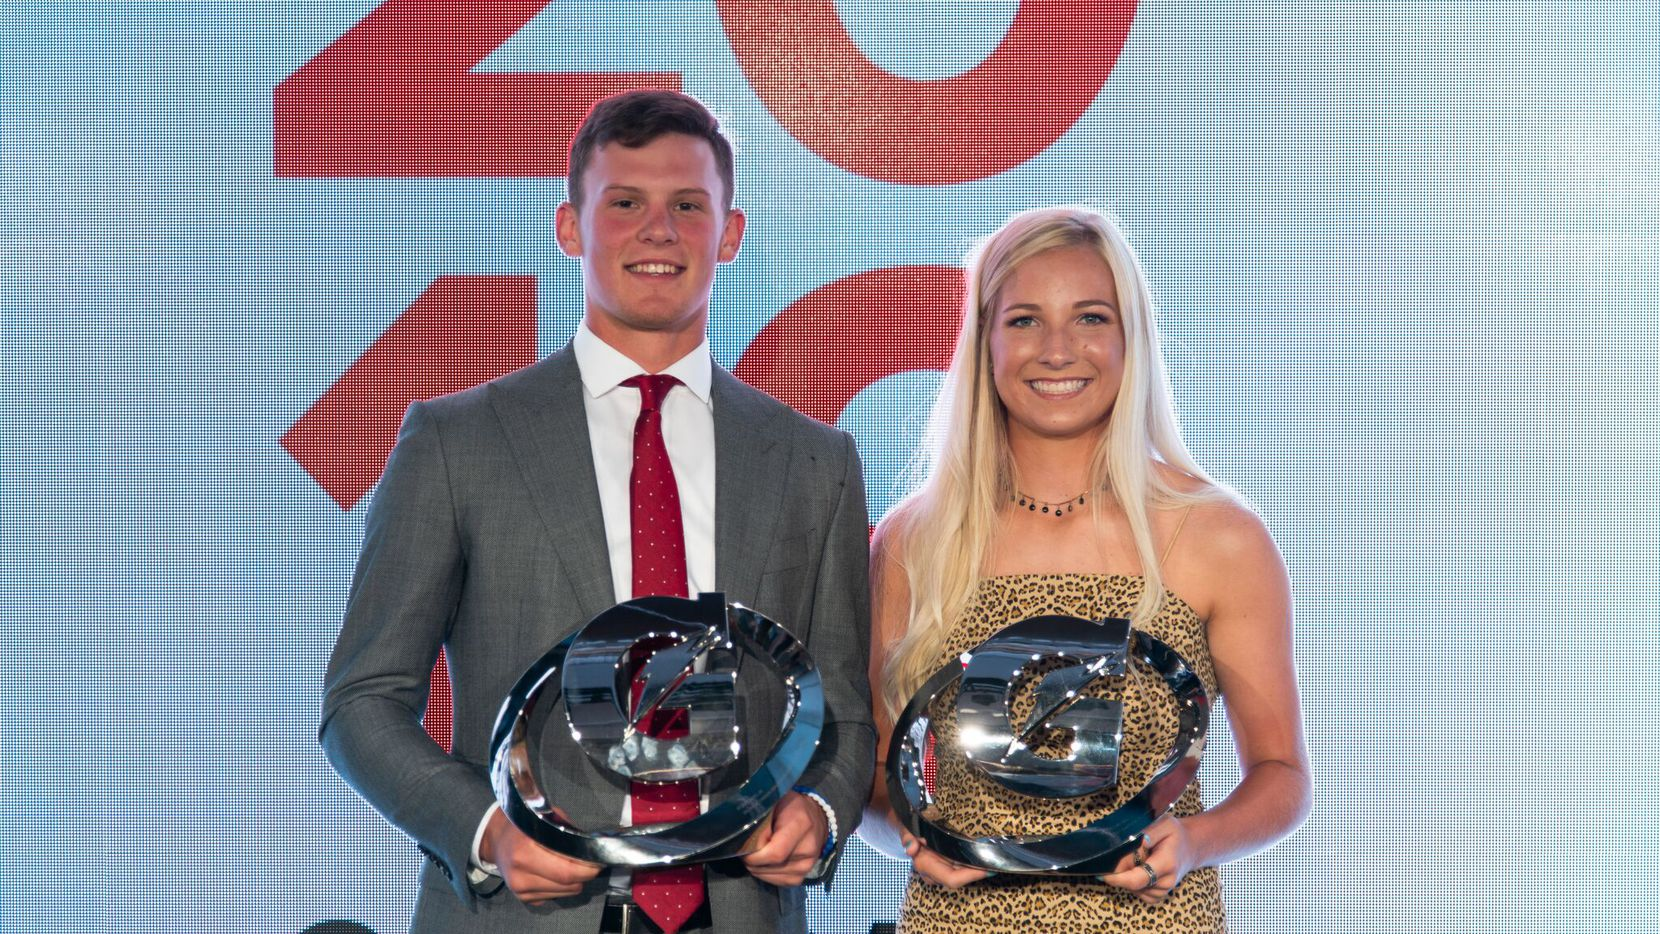 On Tuesday, July 9, 2019 in Los Angeles, California; 2019 Gatorade Female and Male Athlete of the Year award winners Kelley Lynch of East Coweta High School (Sharpsburg, Ga.) and Bobby Witt Jr. of Colleyville Heritage High School (Colleyville, Texas) pose with their trophies. Pictured from left to right: Bobby Witt Jr. and Kelley Lynch. Photo Credit/Gatorade